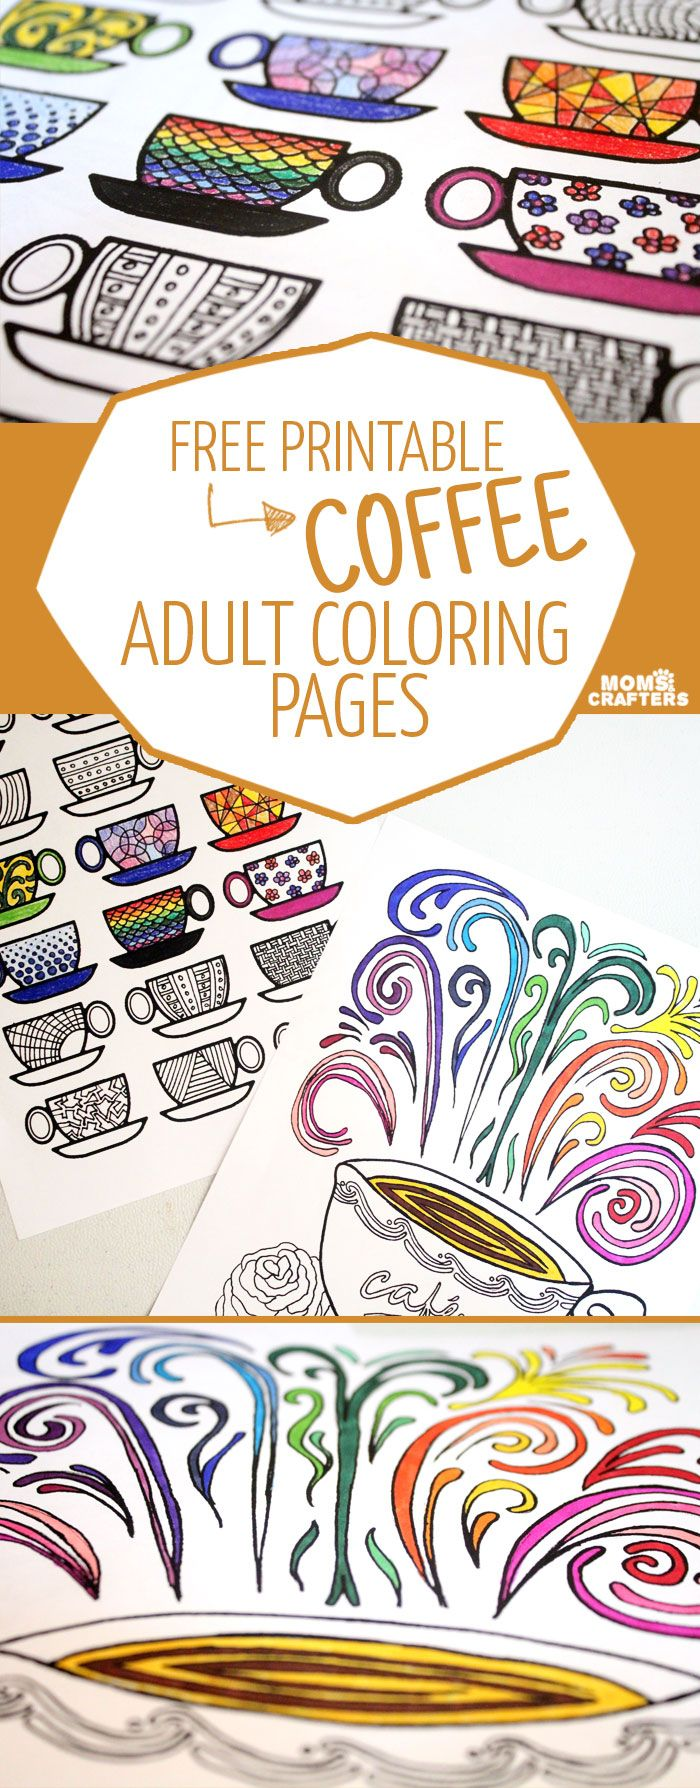 Free printable coloring pages for adults only free printable coloring pages for adults only 37 - Free Printable Coffee Coloring Pages For Adults